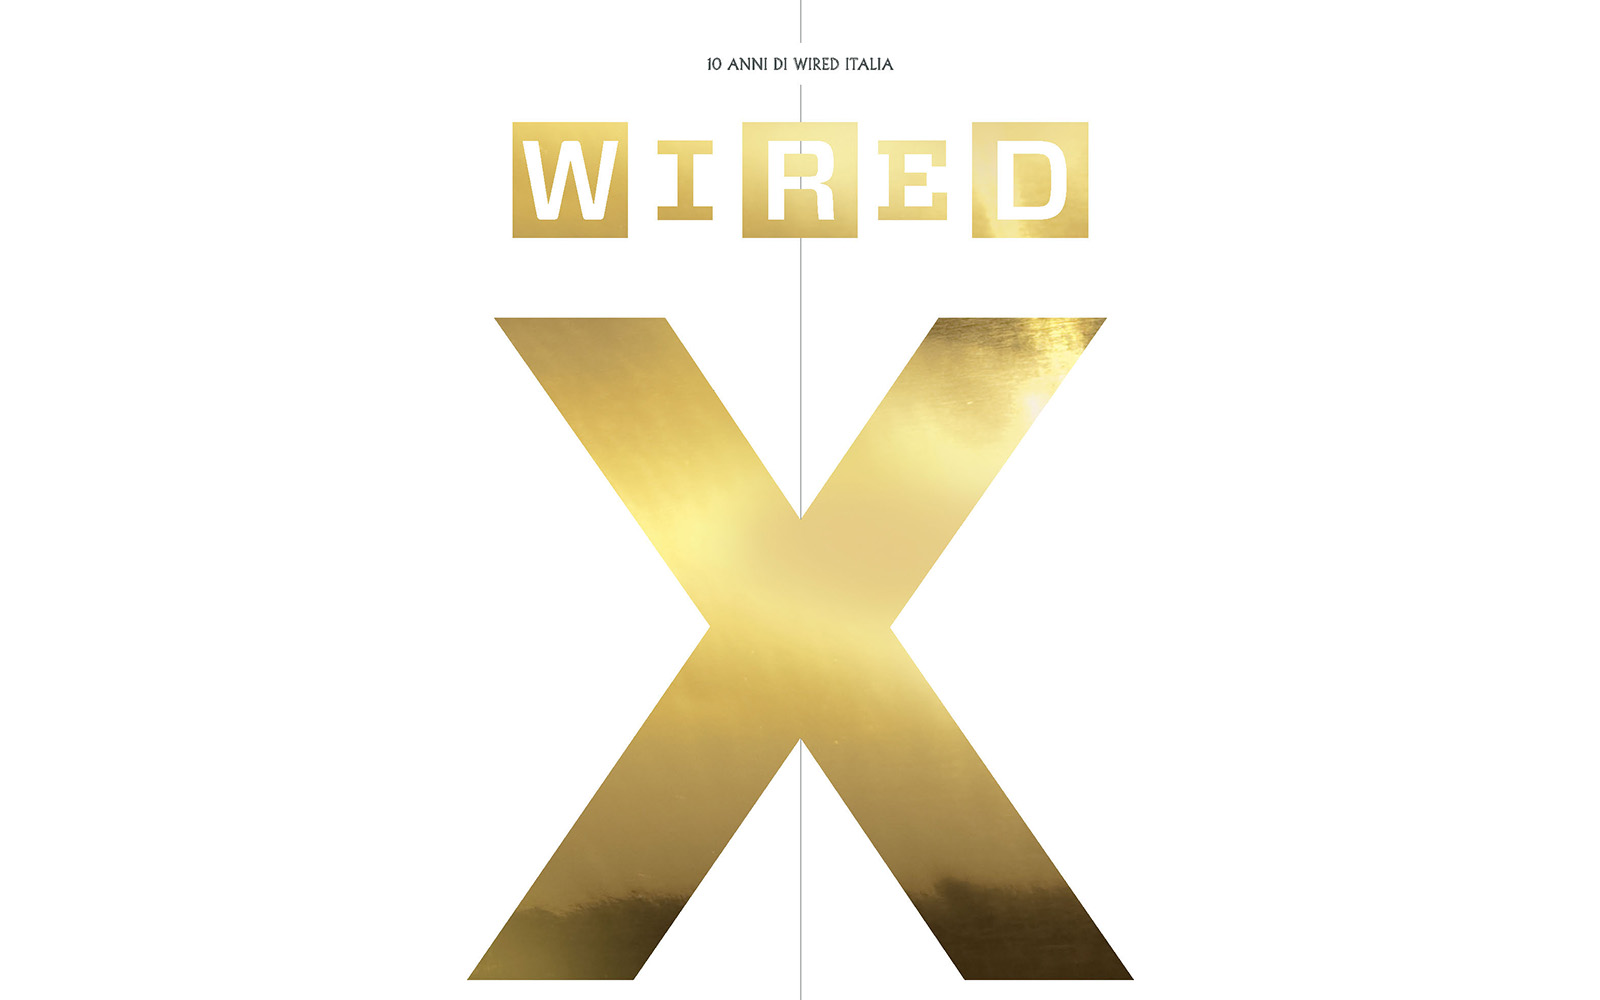 The new issue of Wired Italia, celebrating its 10th anniversary, is on newsstands